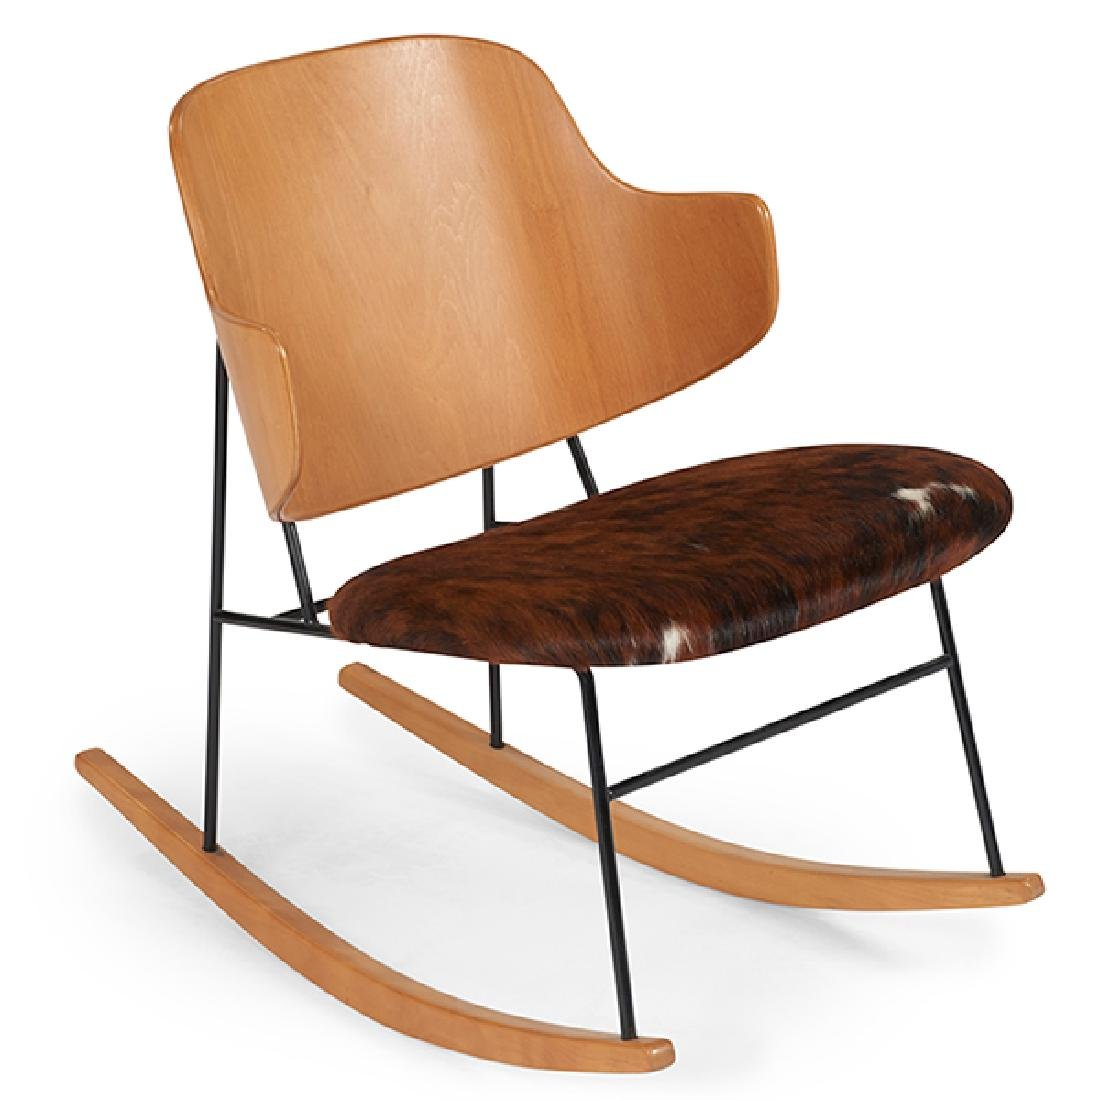 Ib Kofod-Larsen (1921-2003) Penguin rocking chair